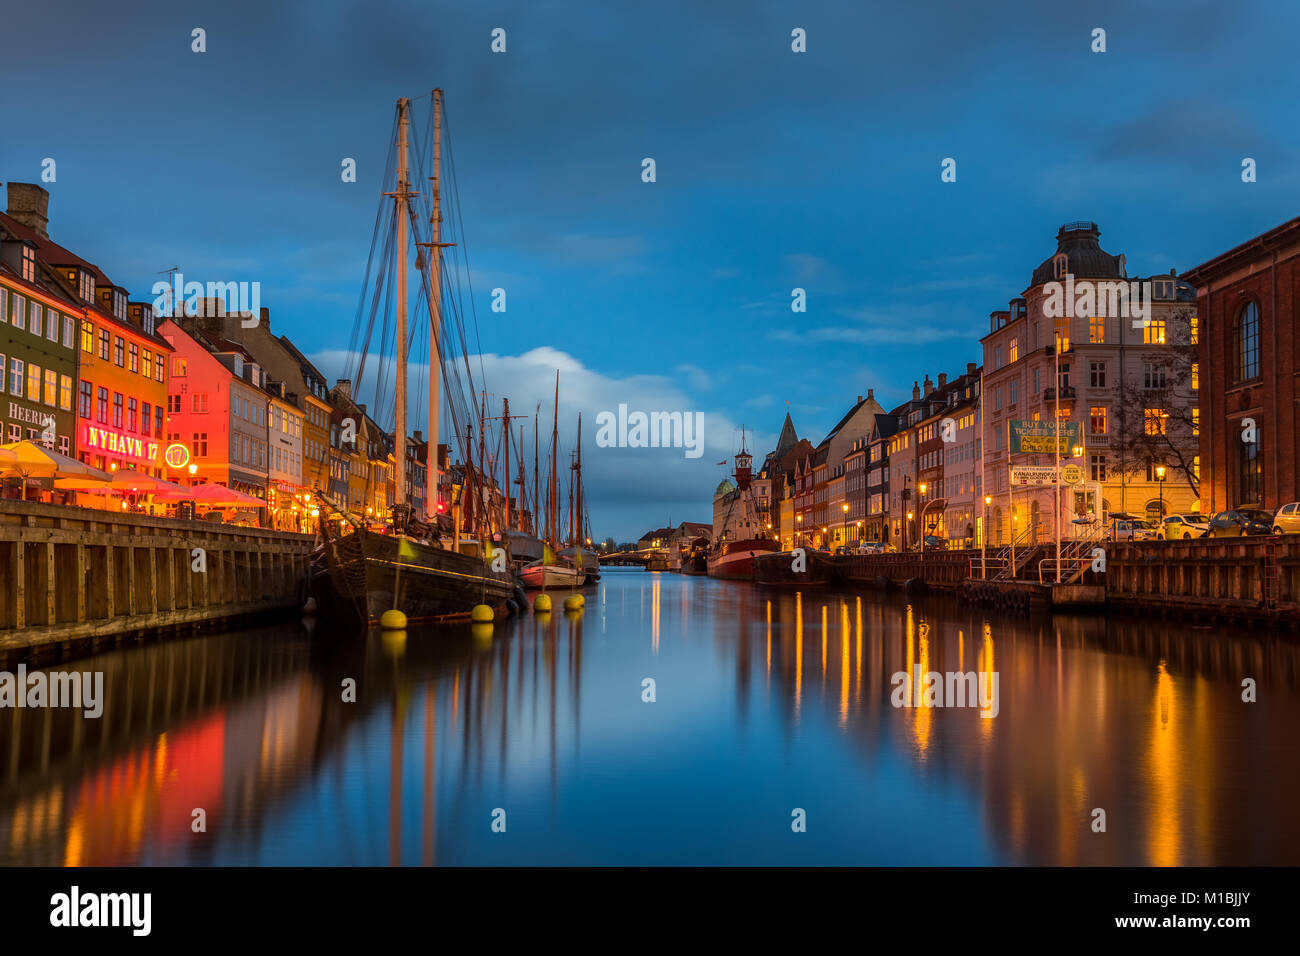 COPENHAGEN, DENMARK - FEBRUARY 28, 2017: Nyhavn at night. A 17th-century waterfront, canal and entertainment district - Stock Image